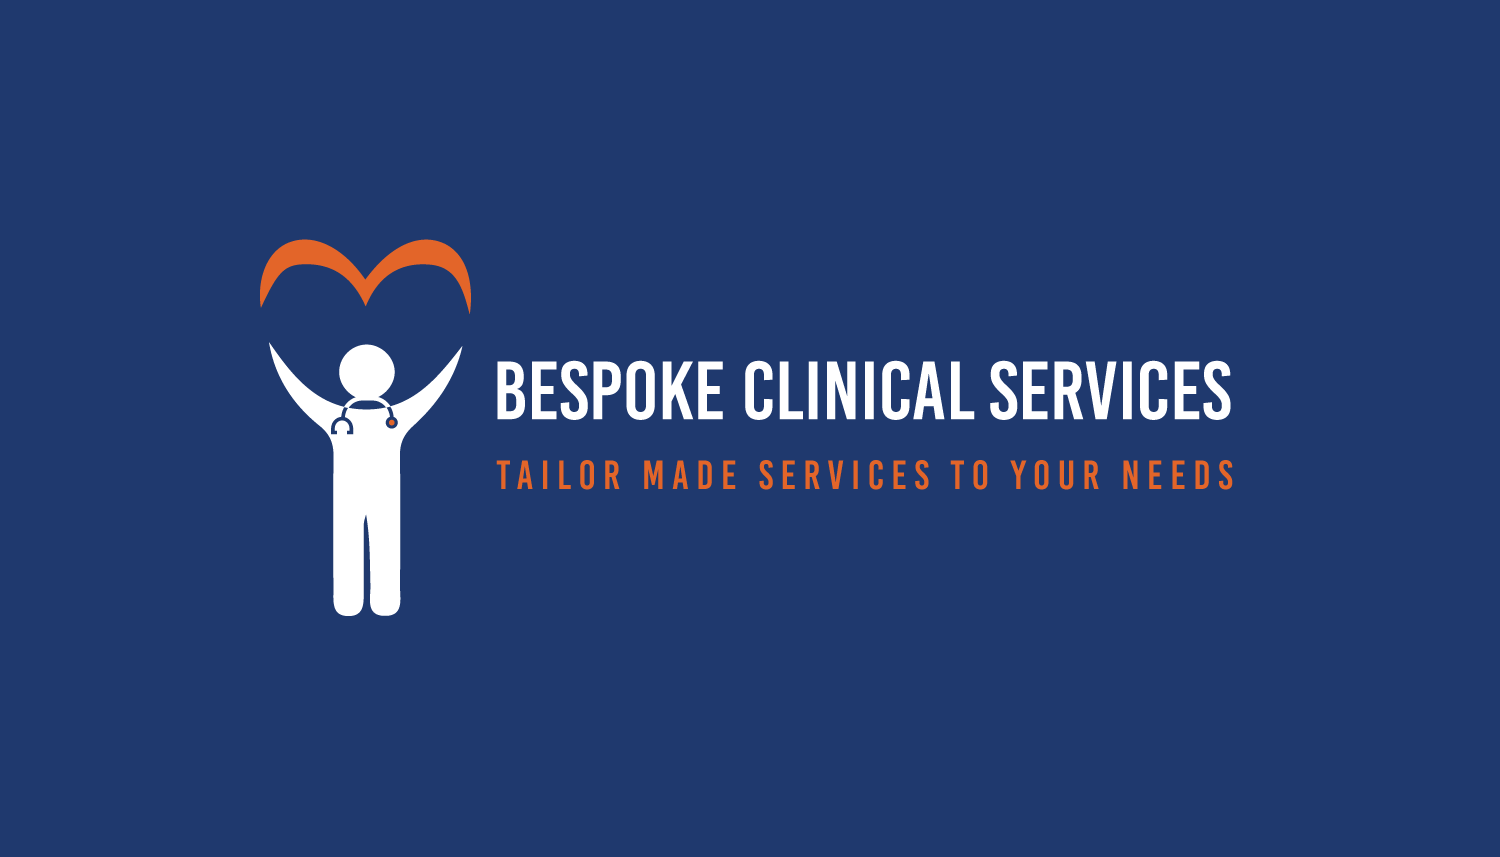 Bespoke clinical services